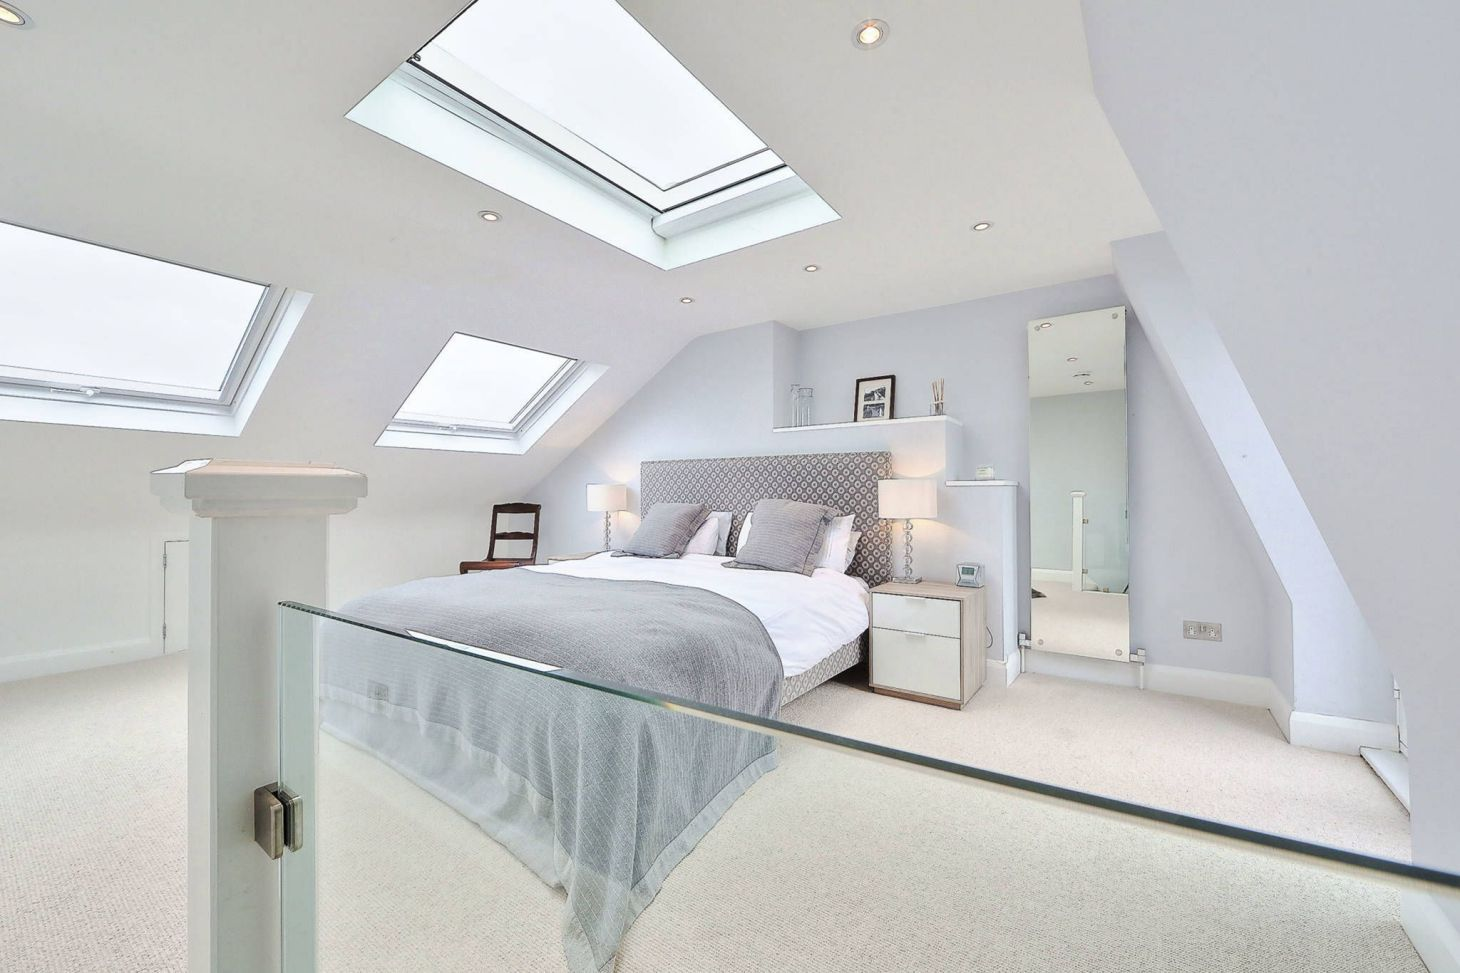 25 Amazing And Beautiful Loft Bedroom Design Ideas For Best Inspiration Goodsgn Modern Style Bedroom Modern Bedroom Loft Conversion Bedroom